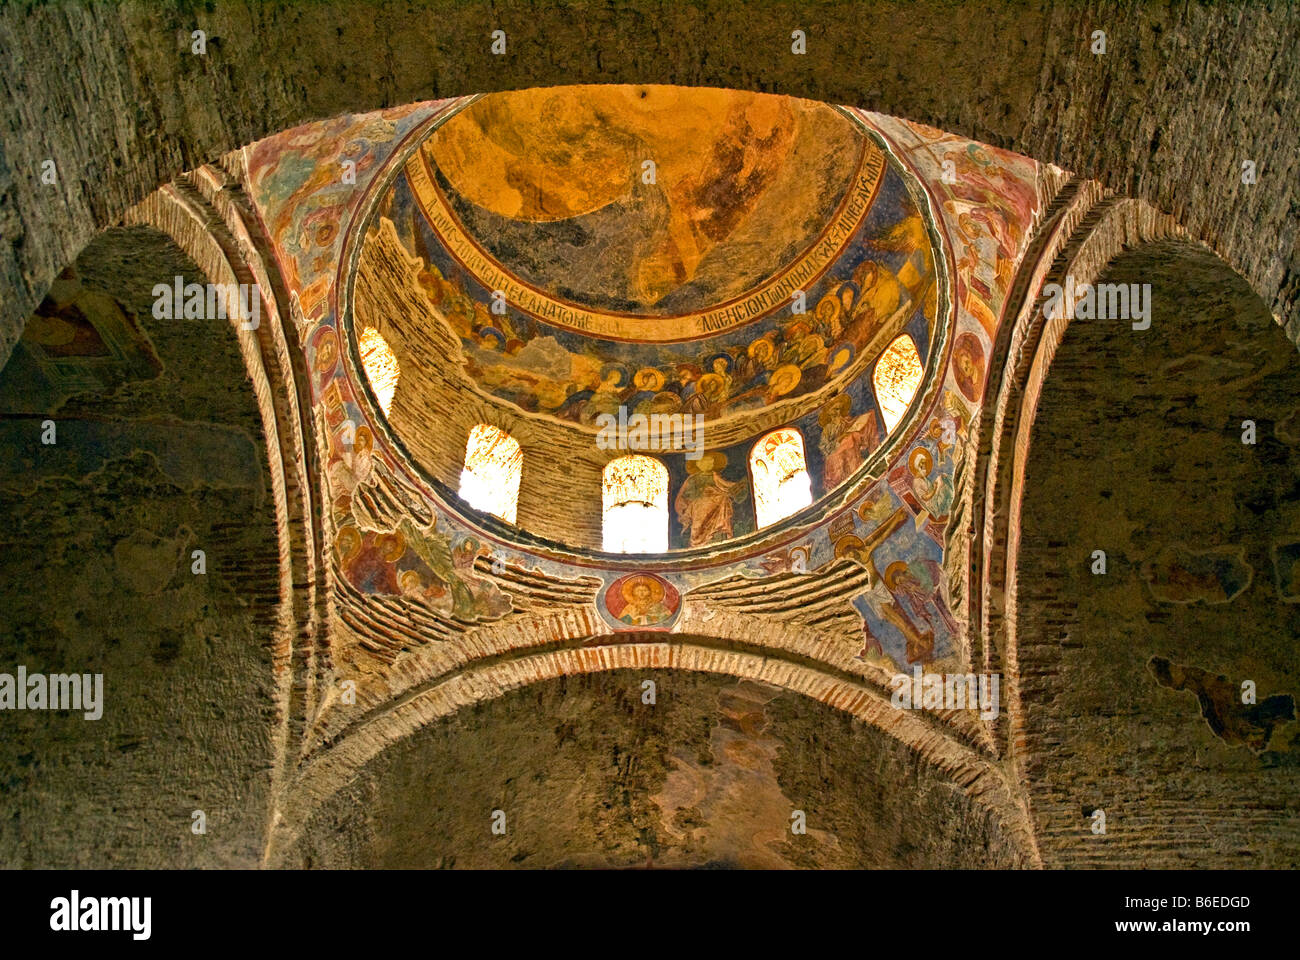 Trabzon's Aya Sofya (Church of the Holy Wisdom), Christian frescoes on vaulted ceiling and dome - Stock Image